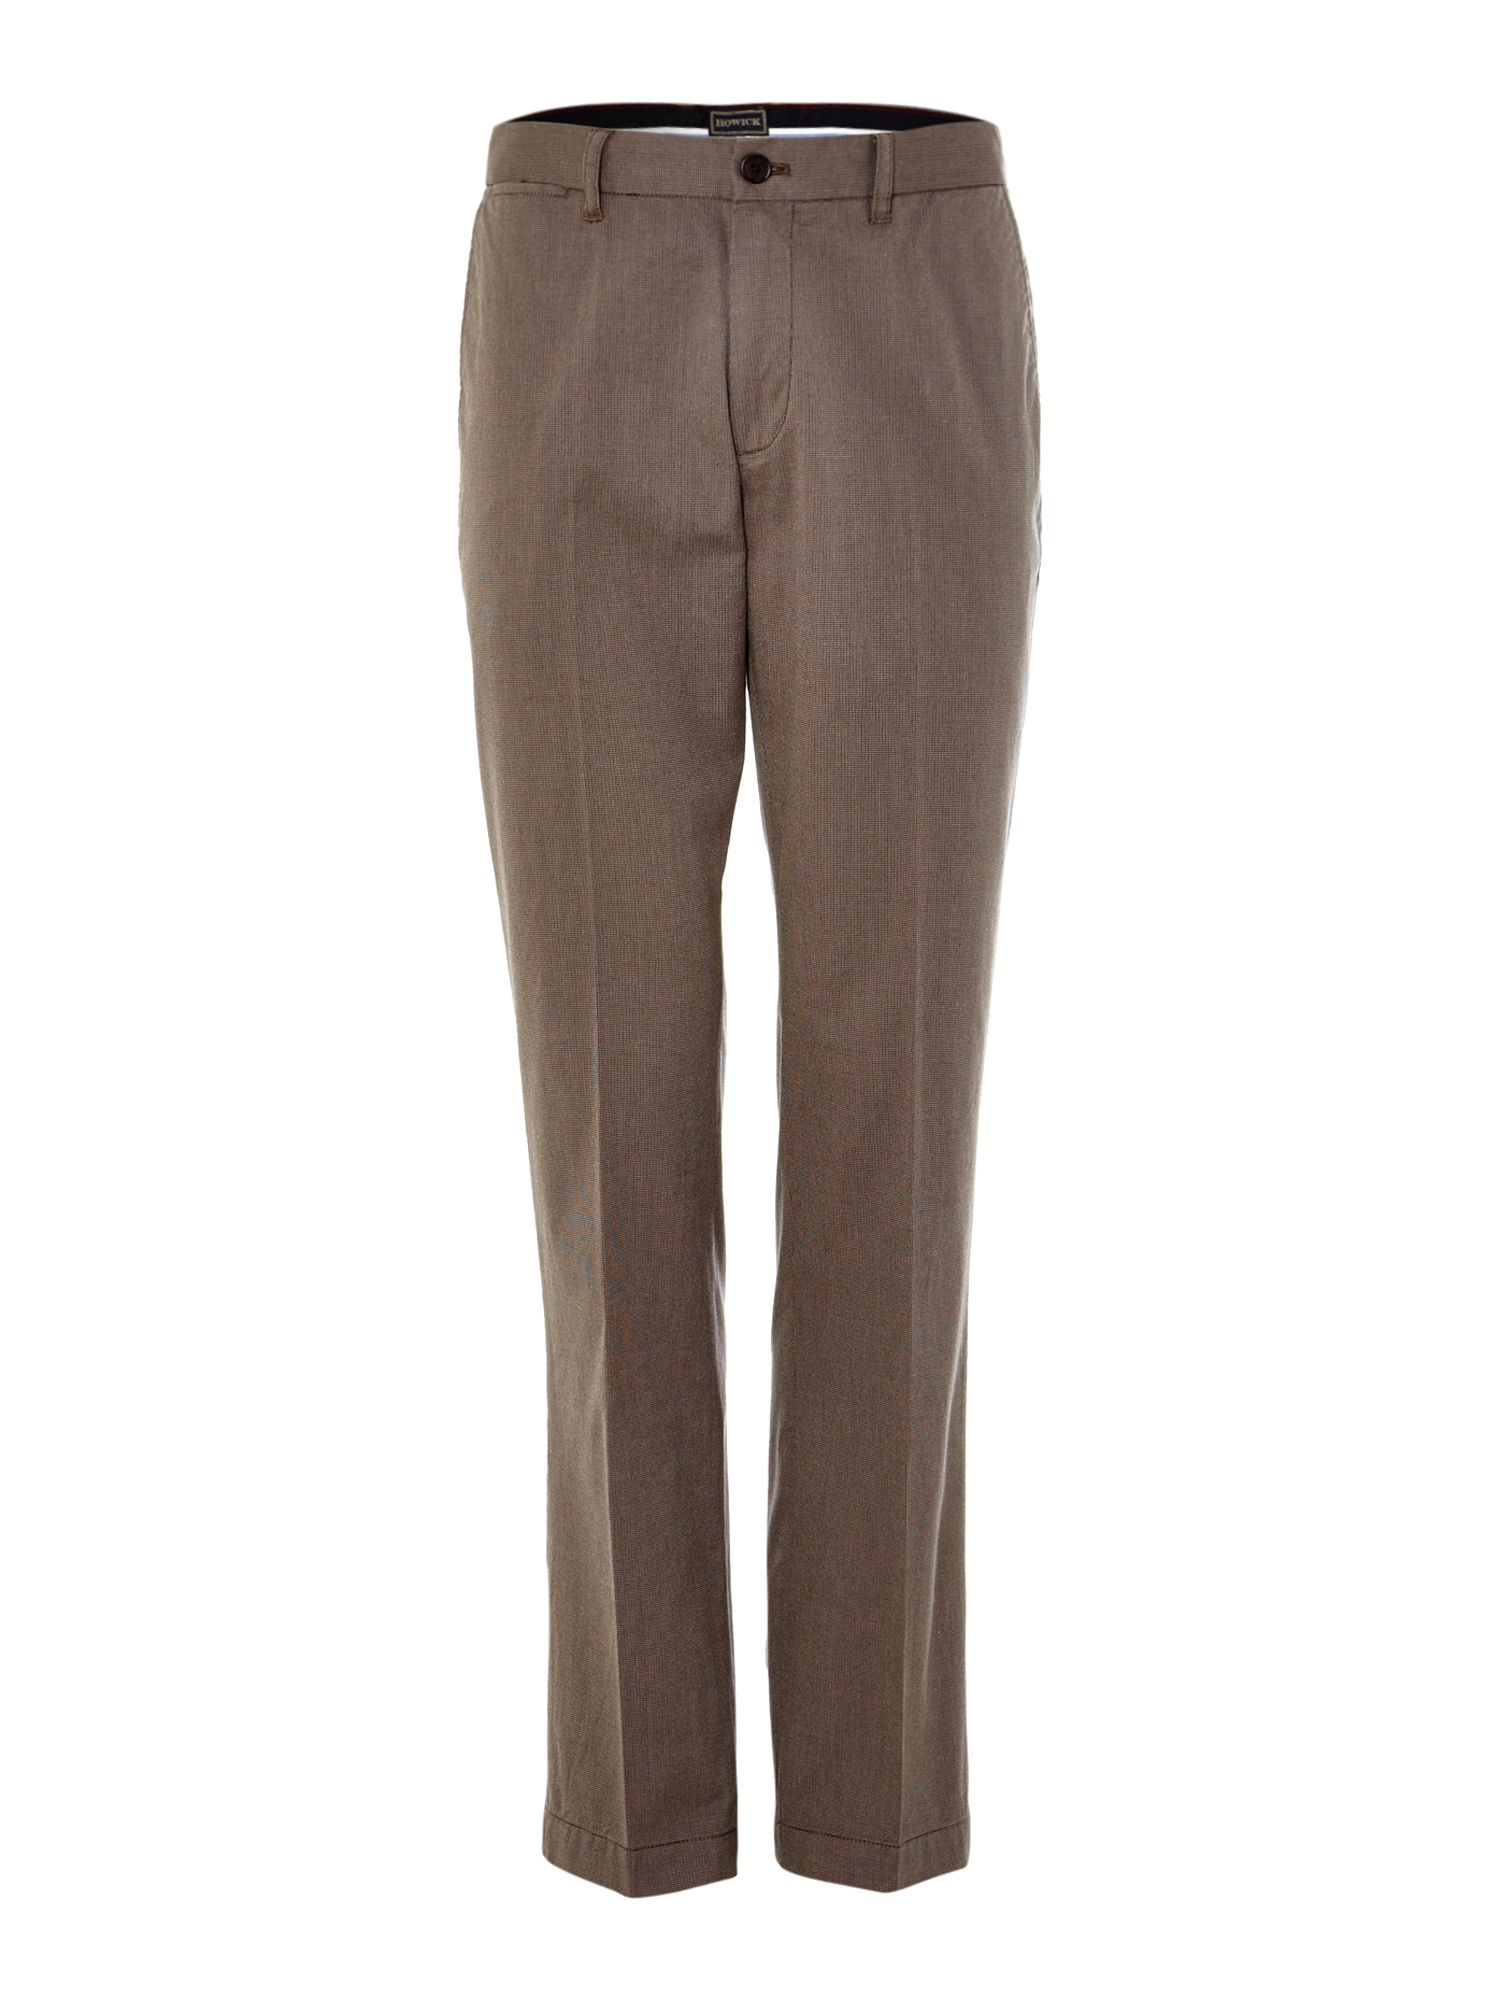 Findon smart trouser